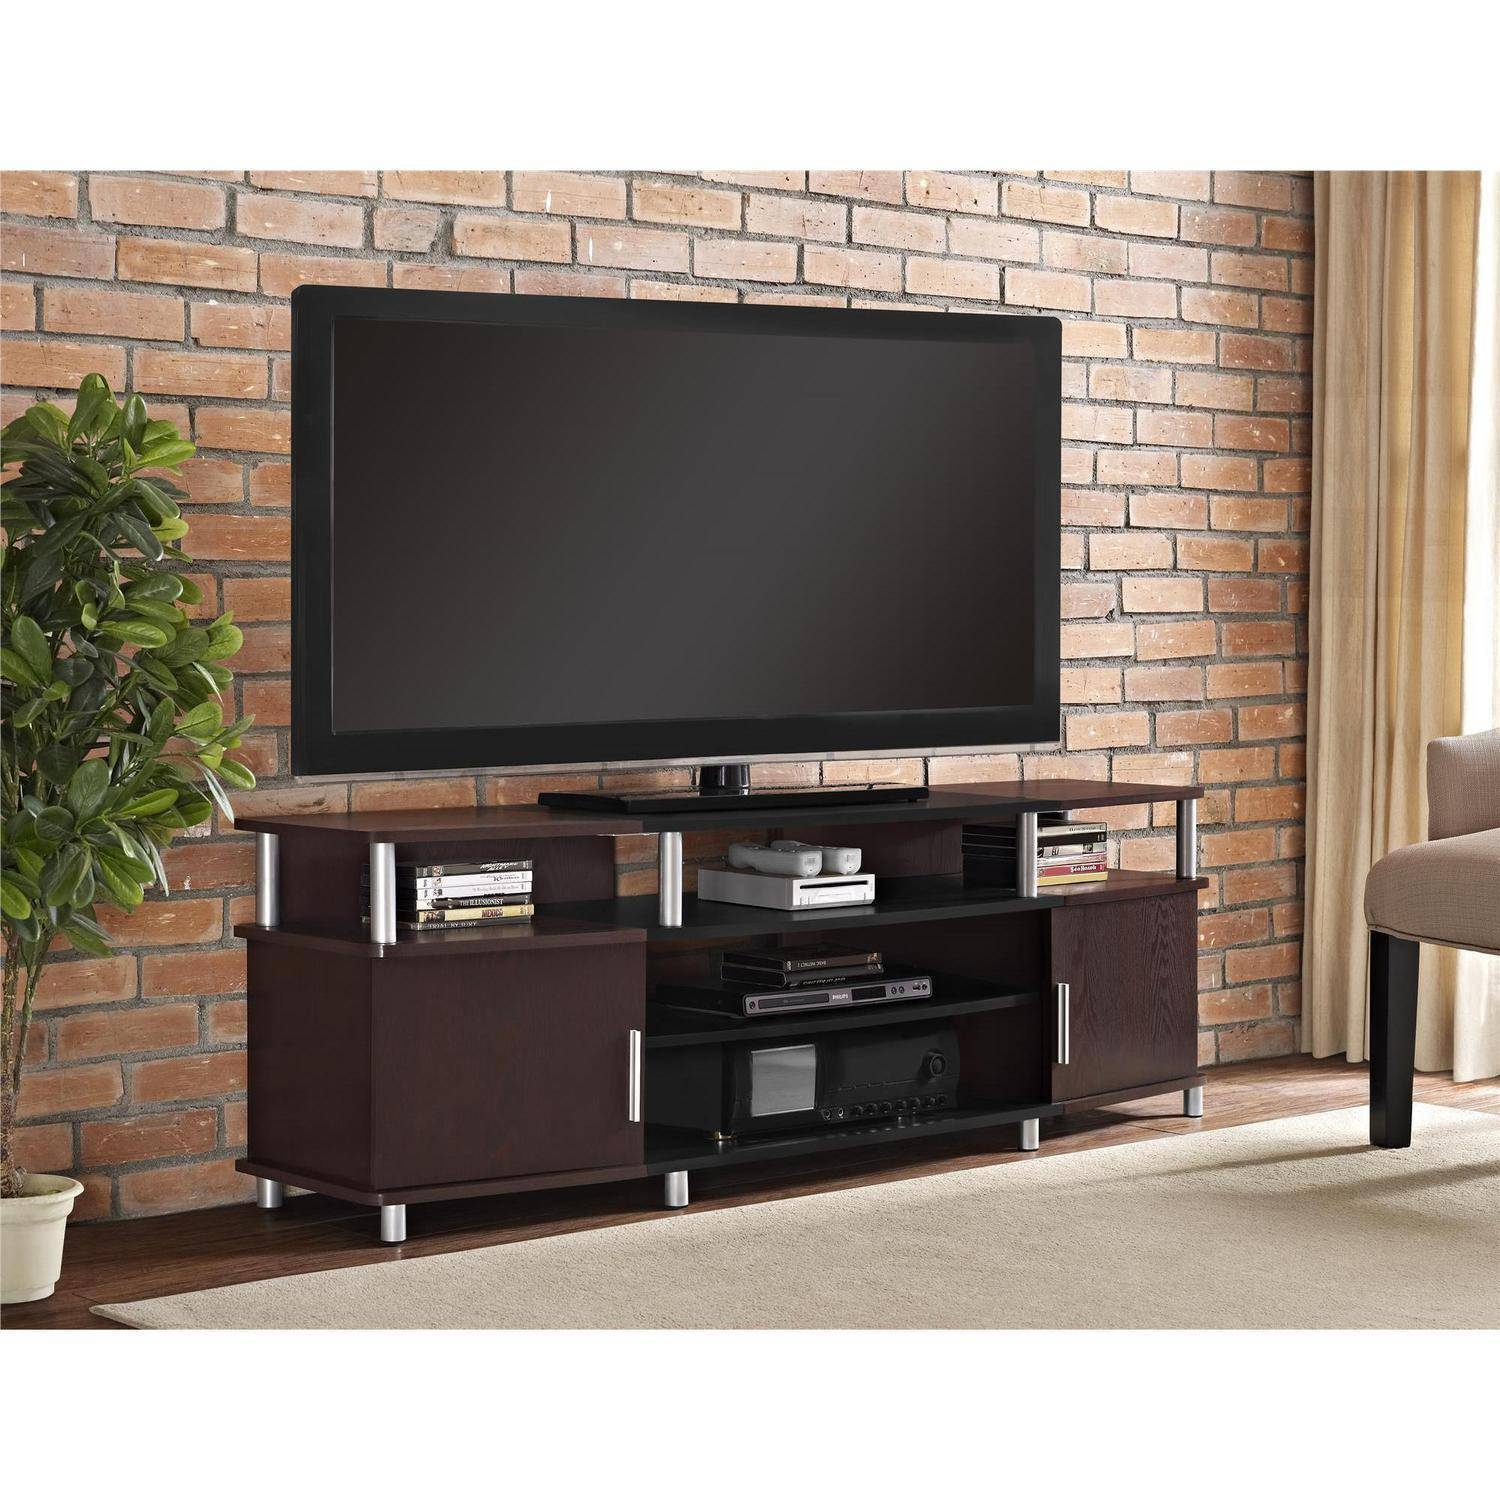 "Carson Tv Stand For Tvs Up To 70"" Wide, Cherry - Walmart with regard to Cherry Tv Stands (Image 4 of 15)"